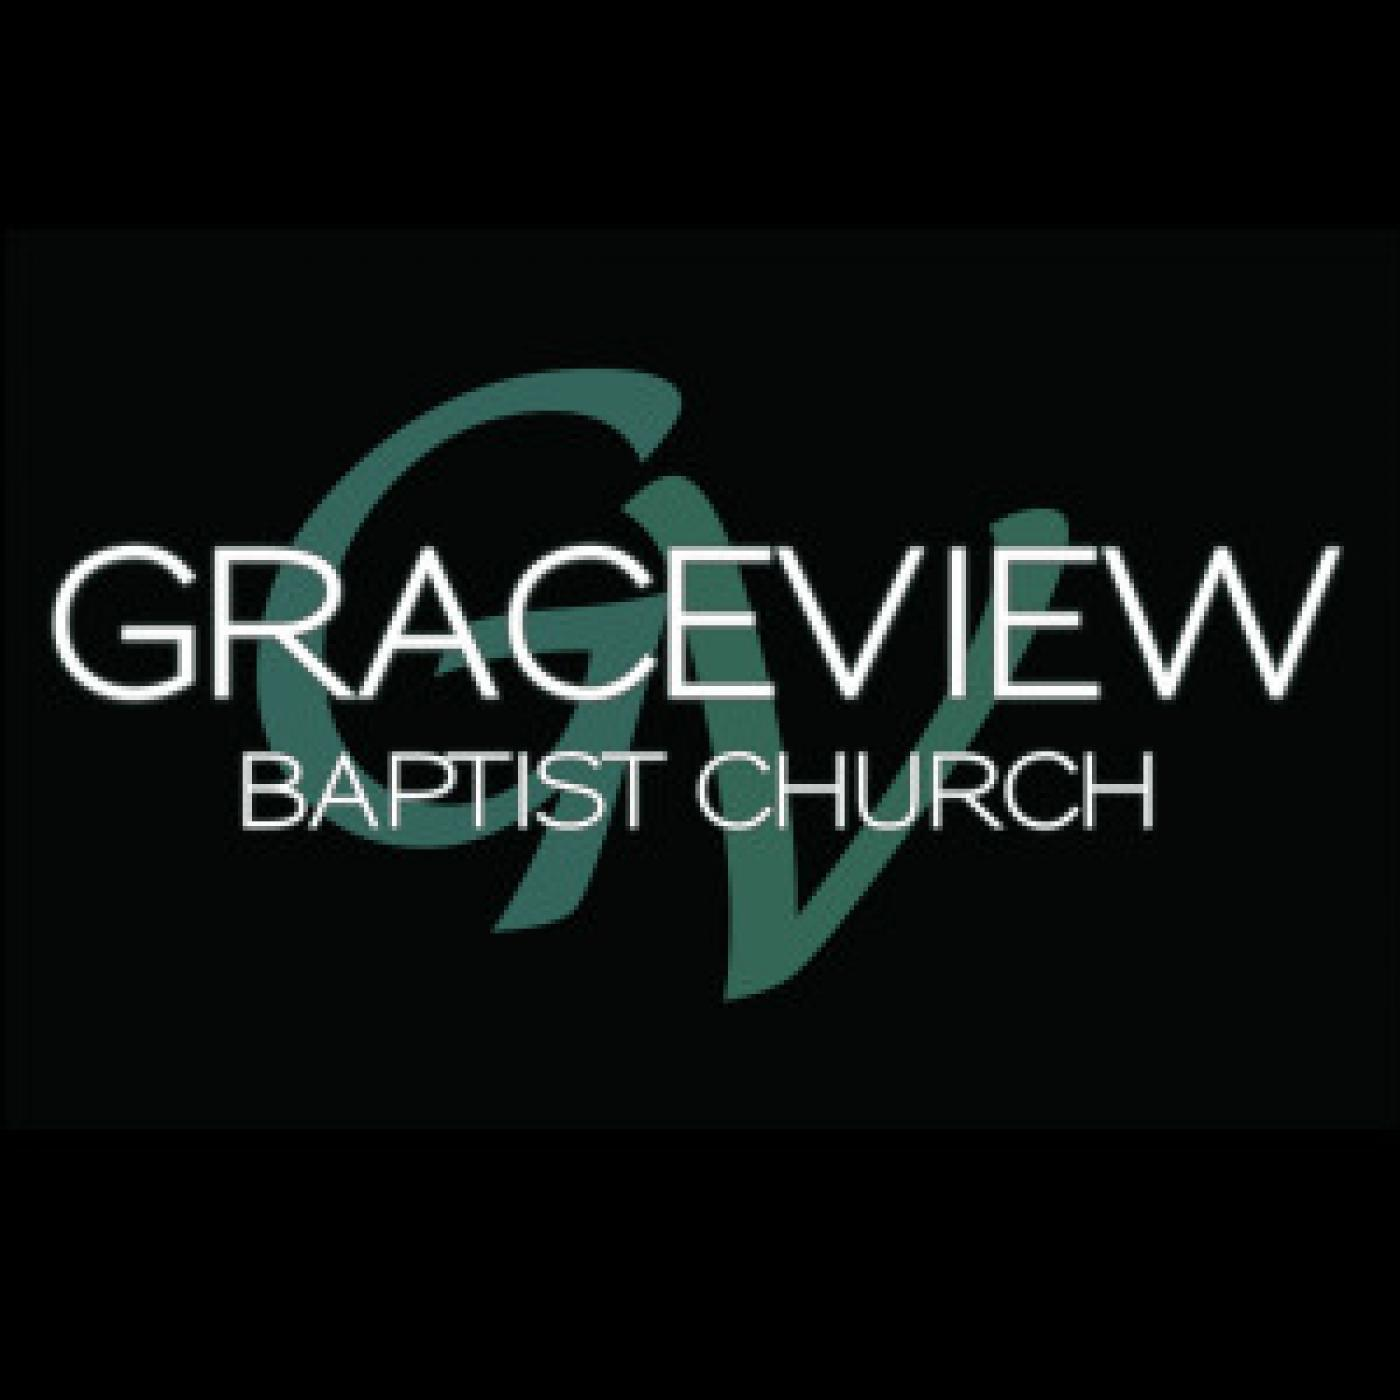 GRACEVIEW Baptist Church